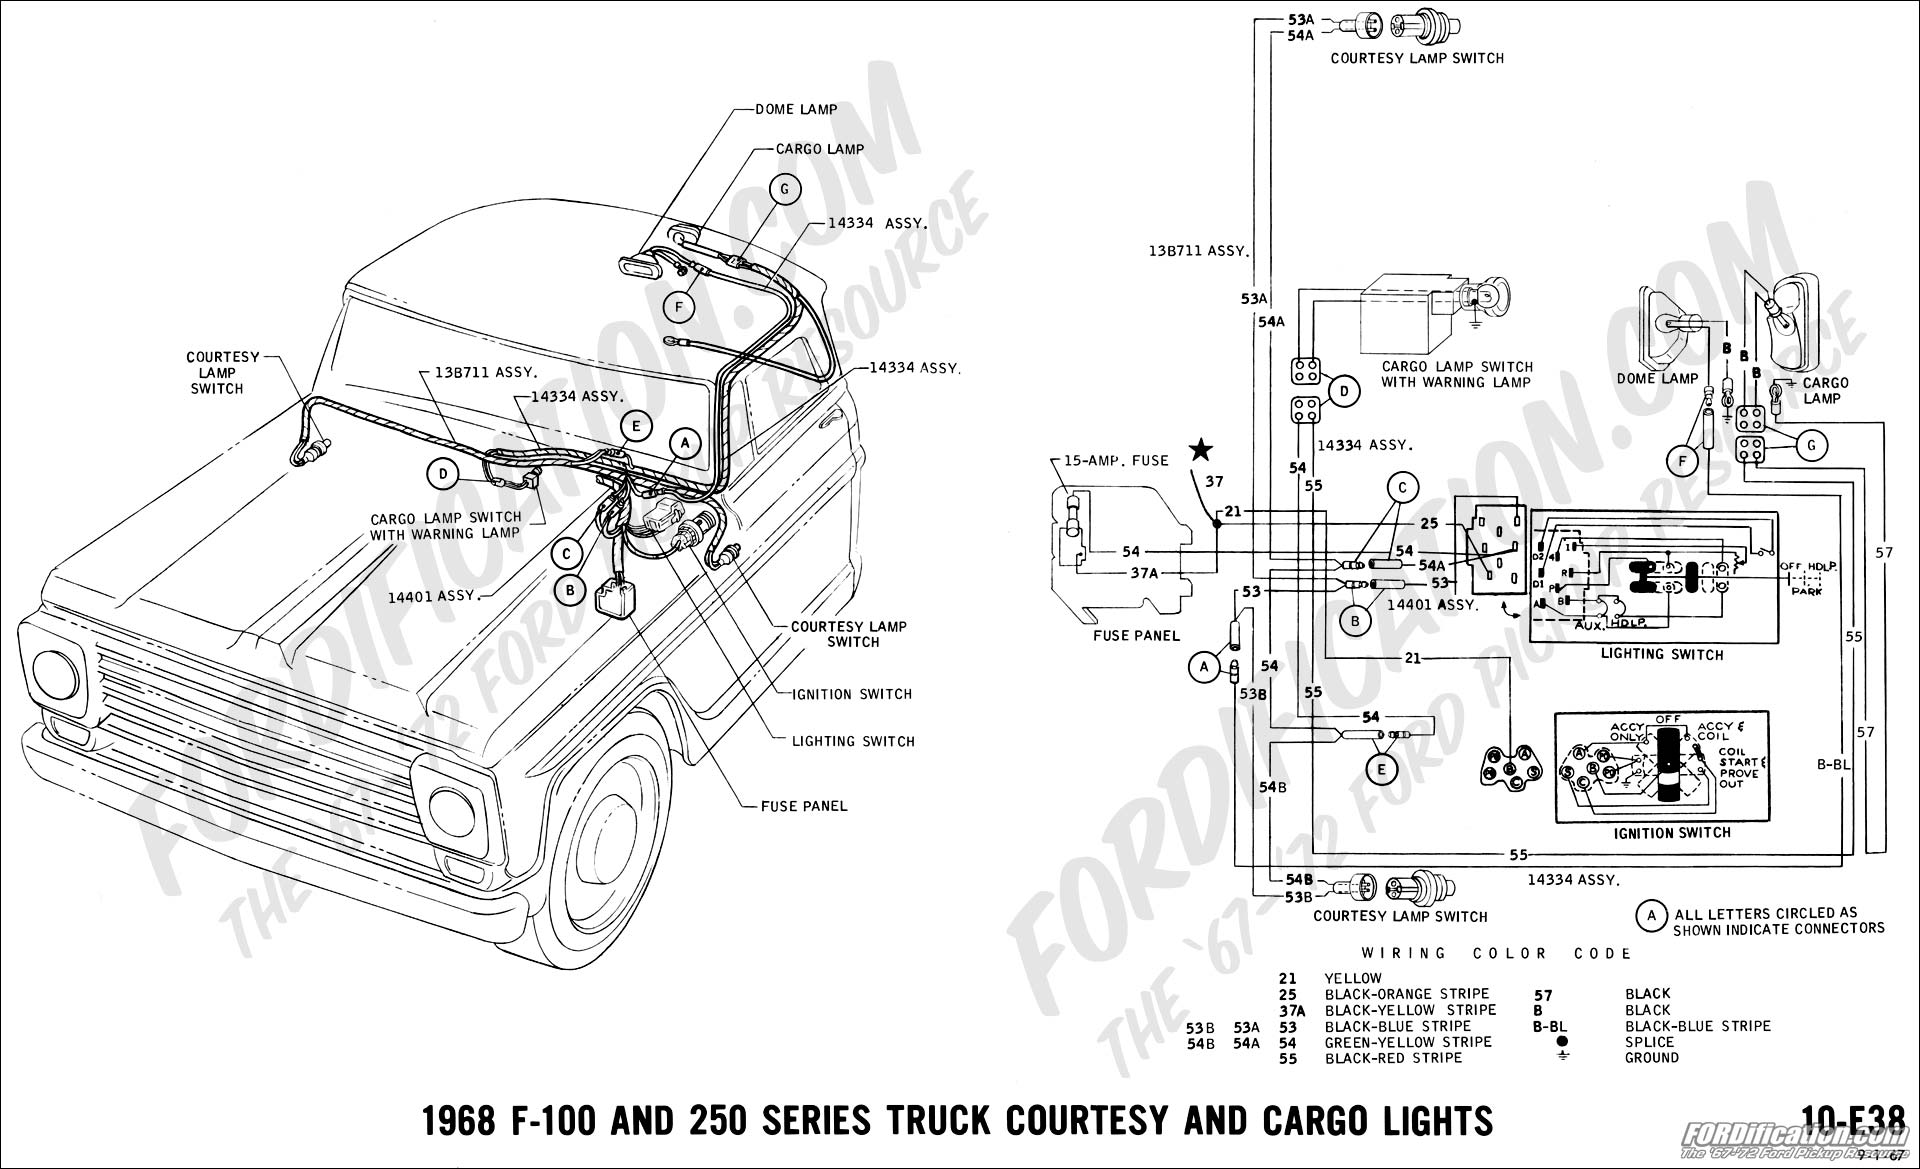 68 40 ford truck technical drawings and schematics section h wiring 1971 ford f250 wiring diagram at edmiracle.co